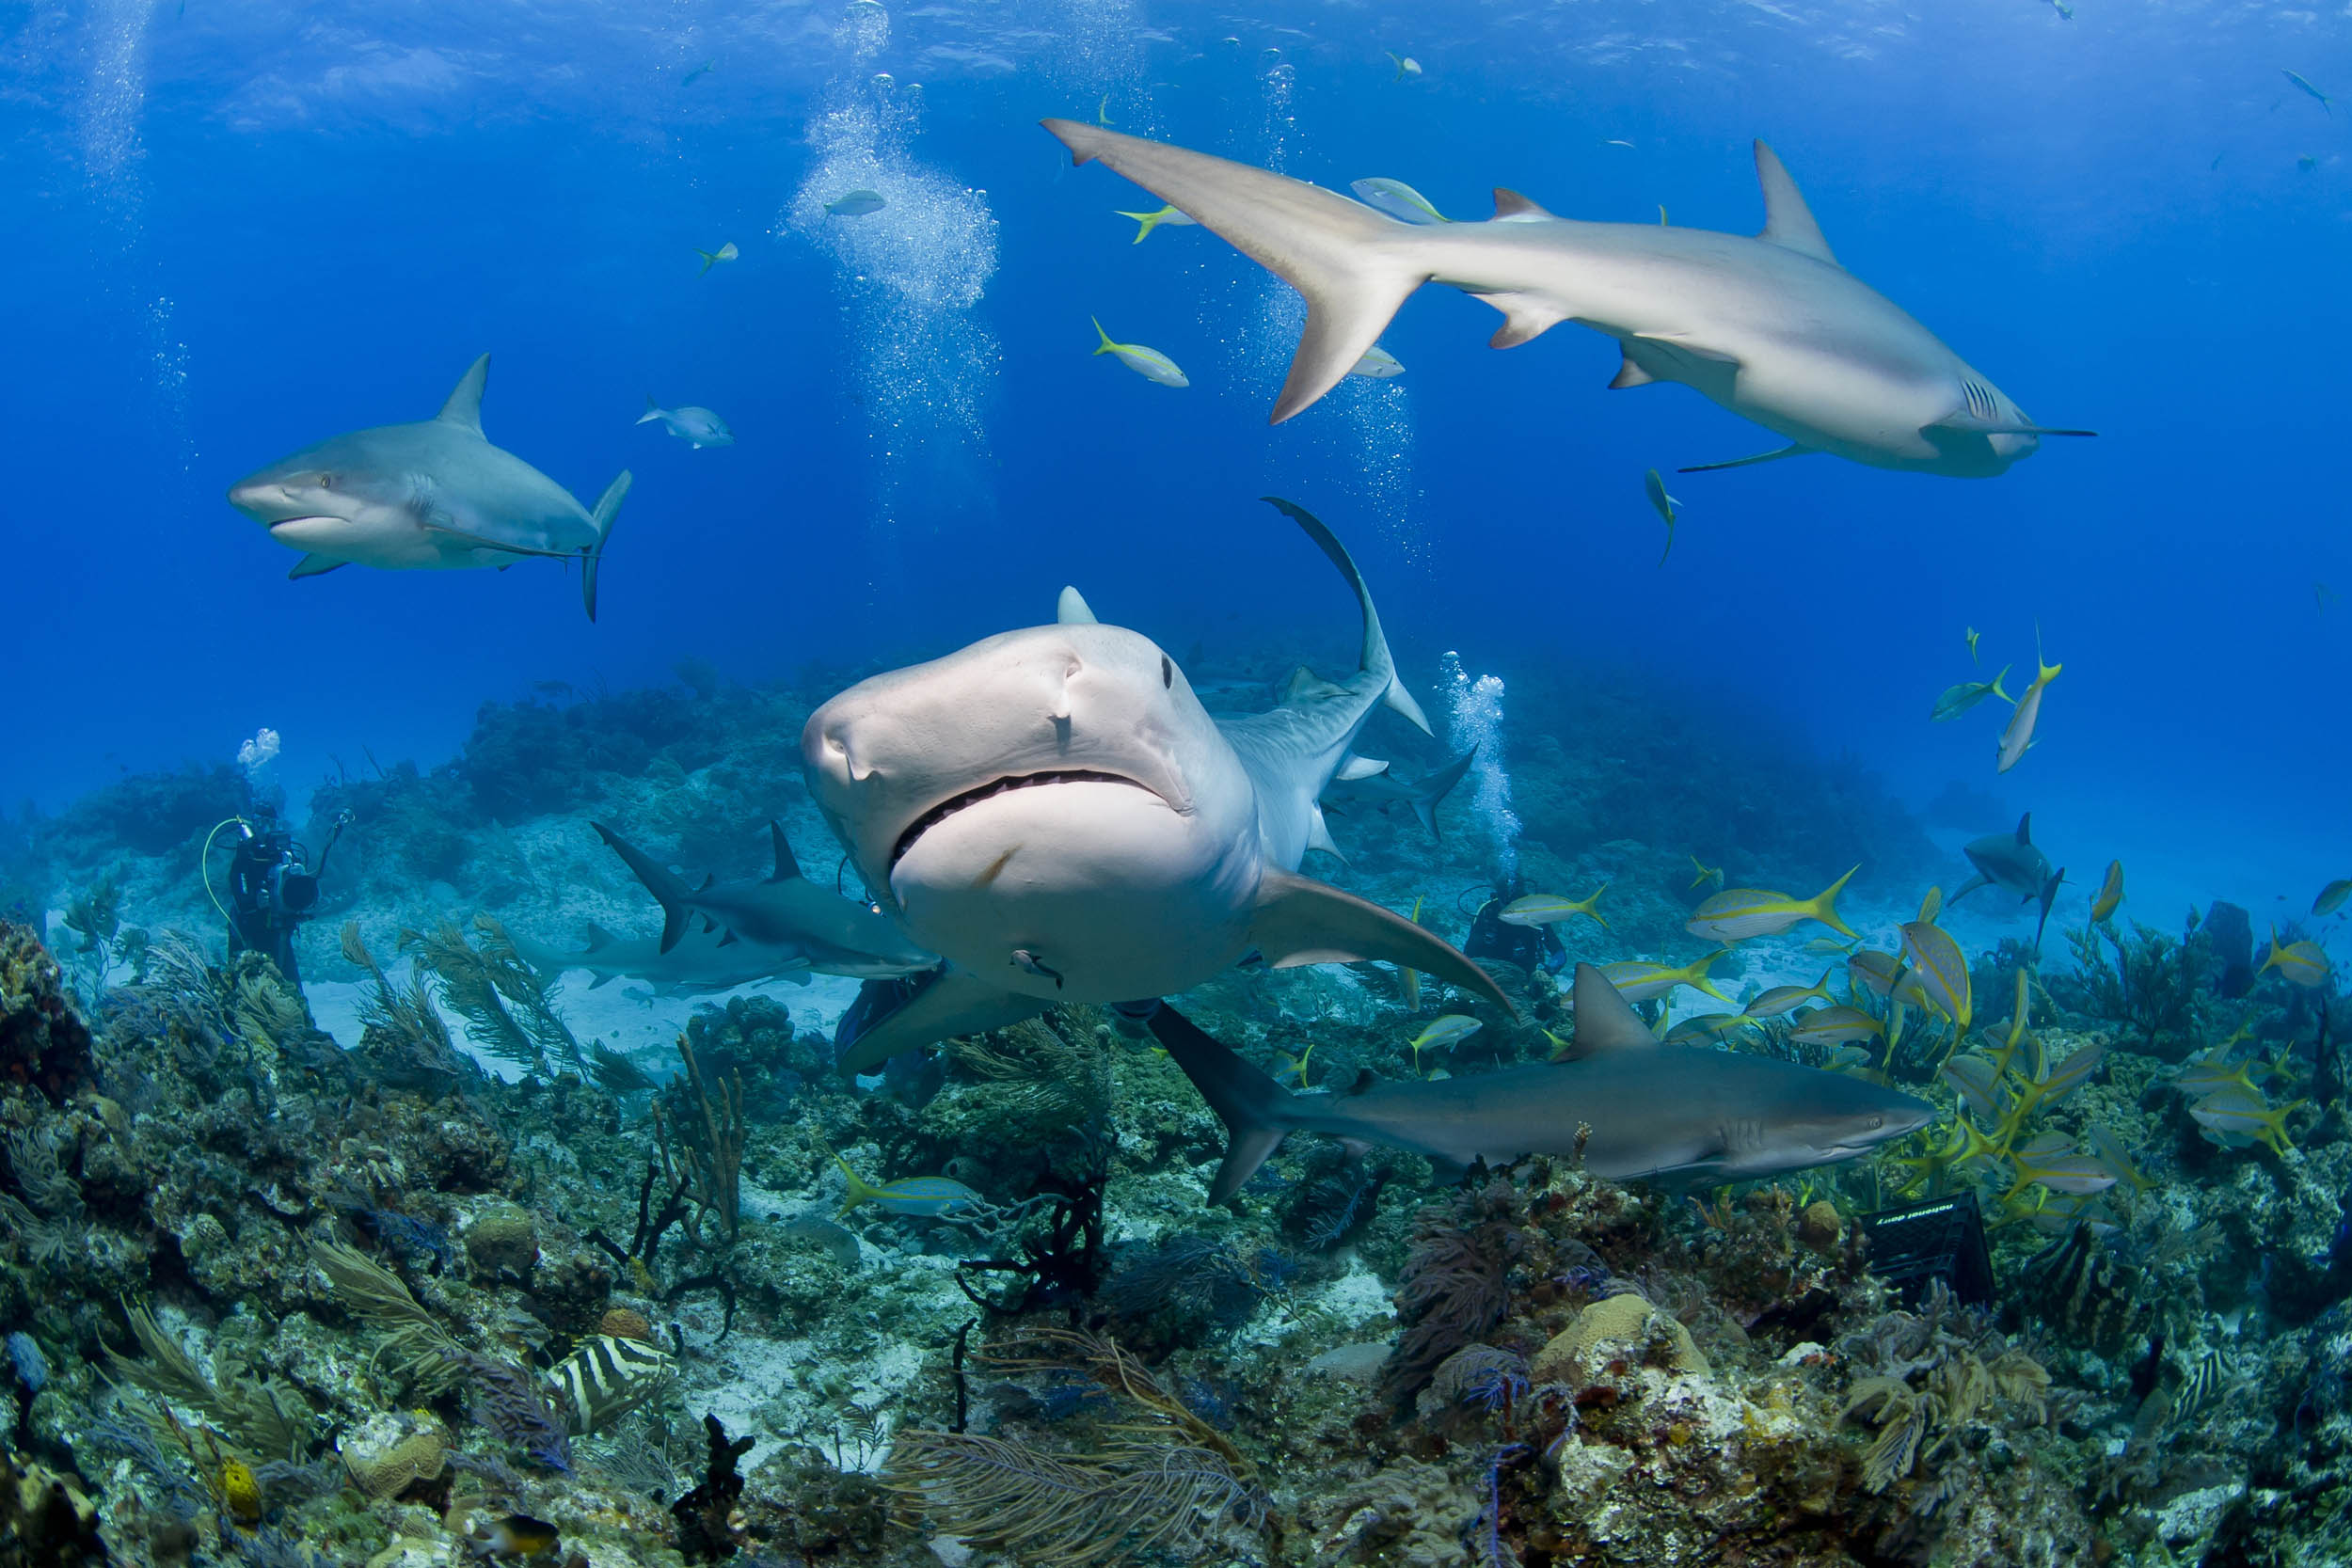 Kiribati establishes shark sanctuary